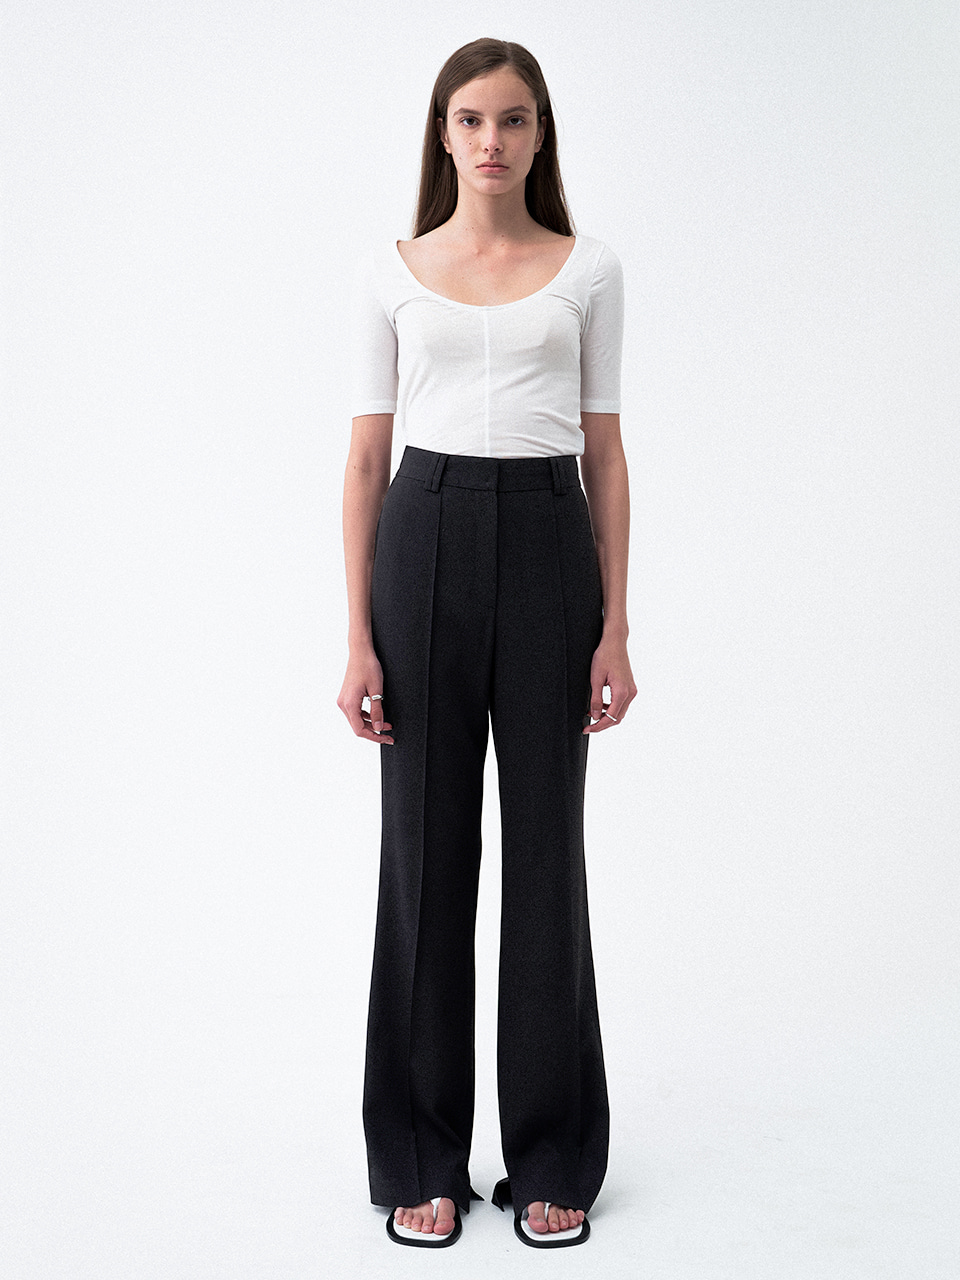 Pin Tuck Slit Slacks Black